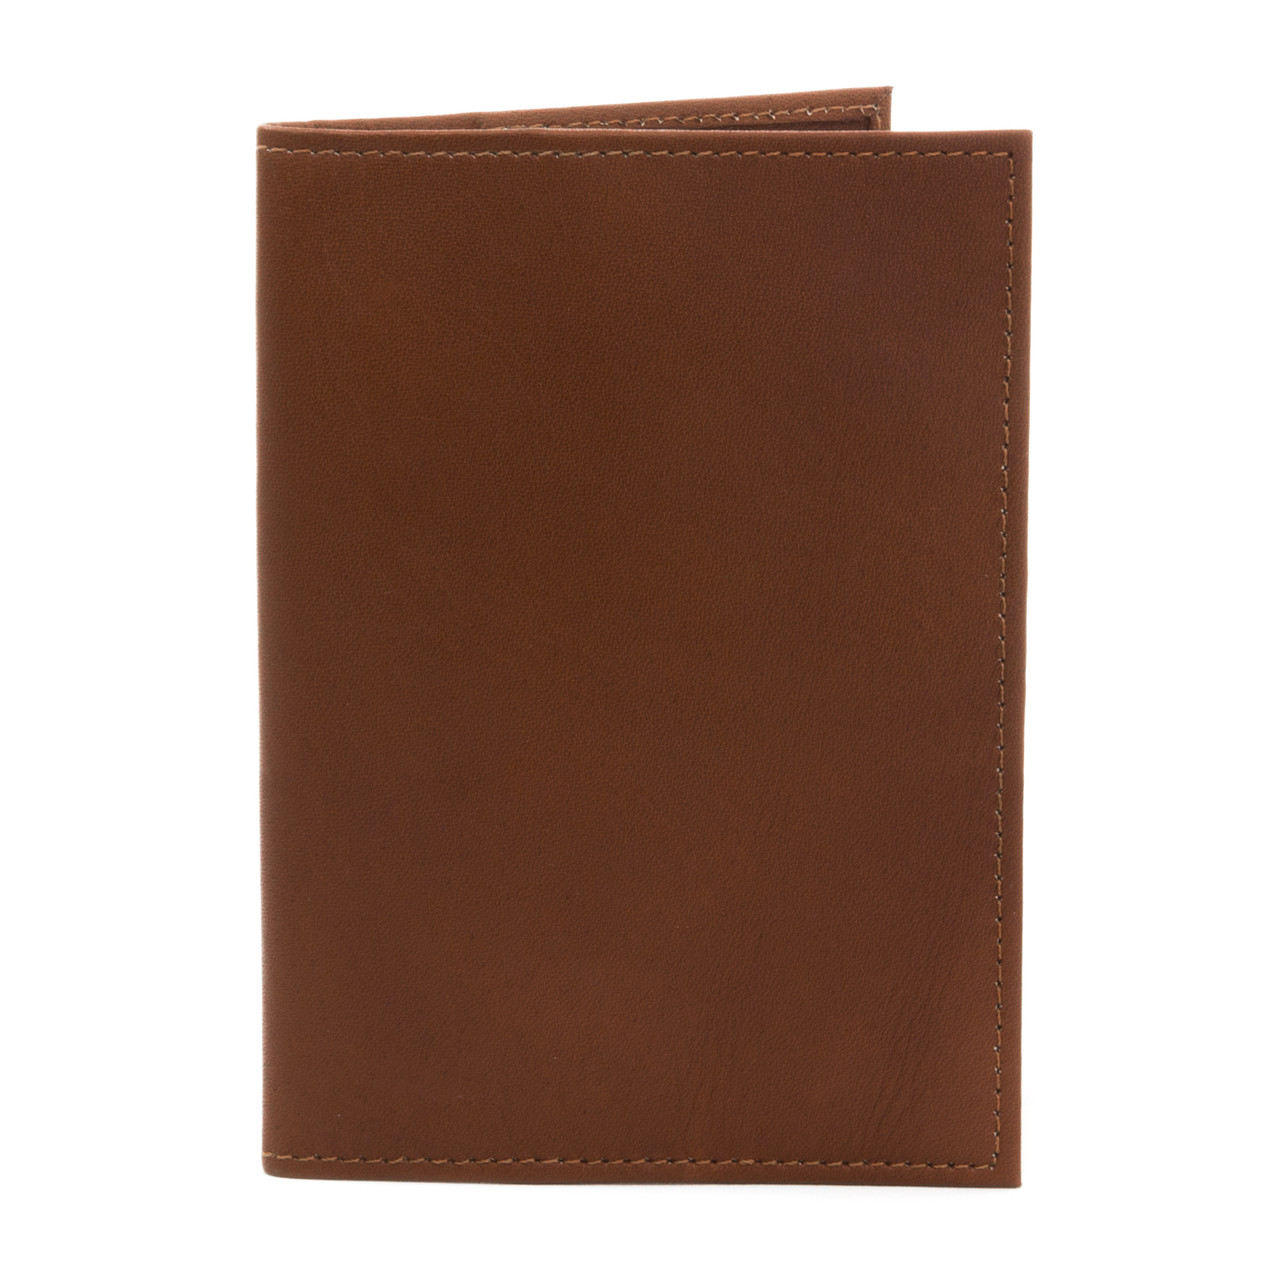 Muiska - Luca - Lightweight passport holder in Saddle